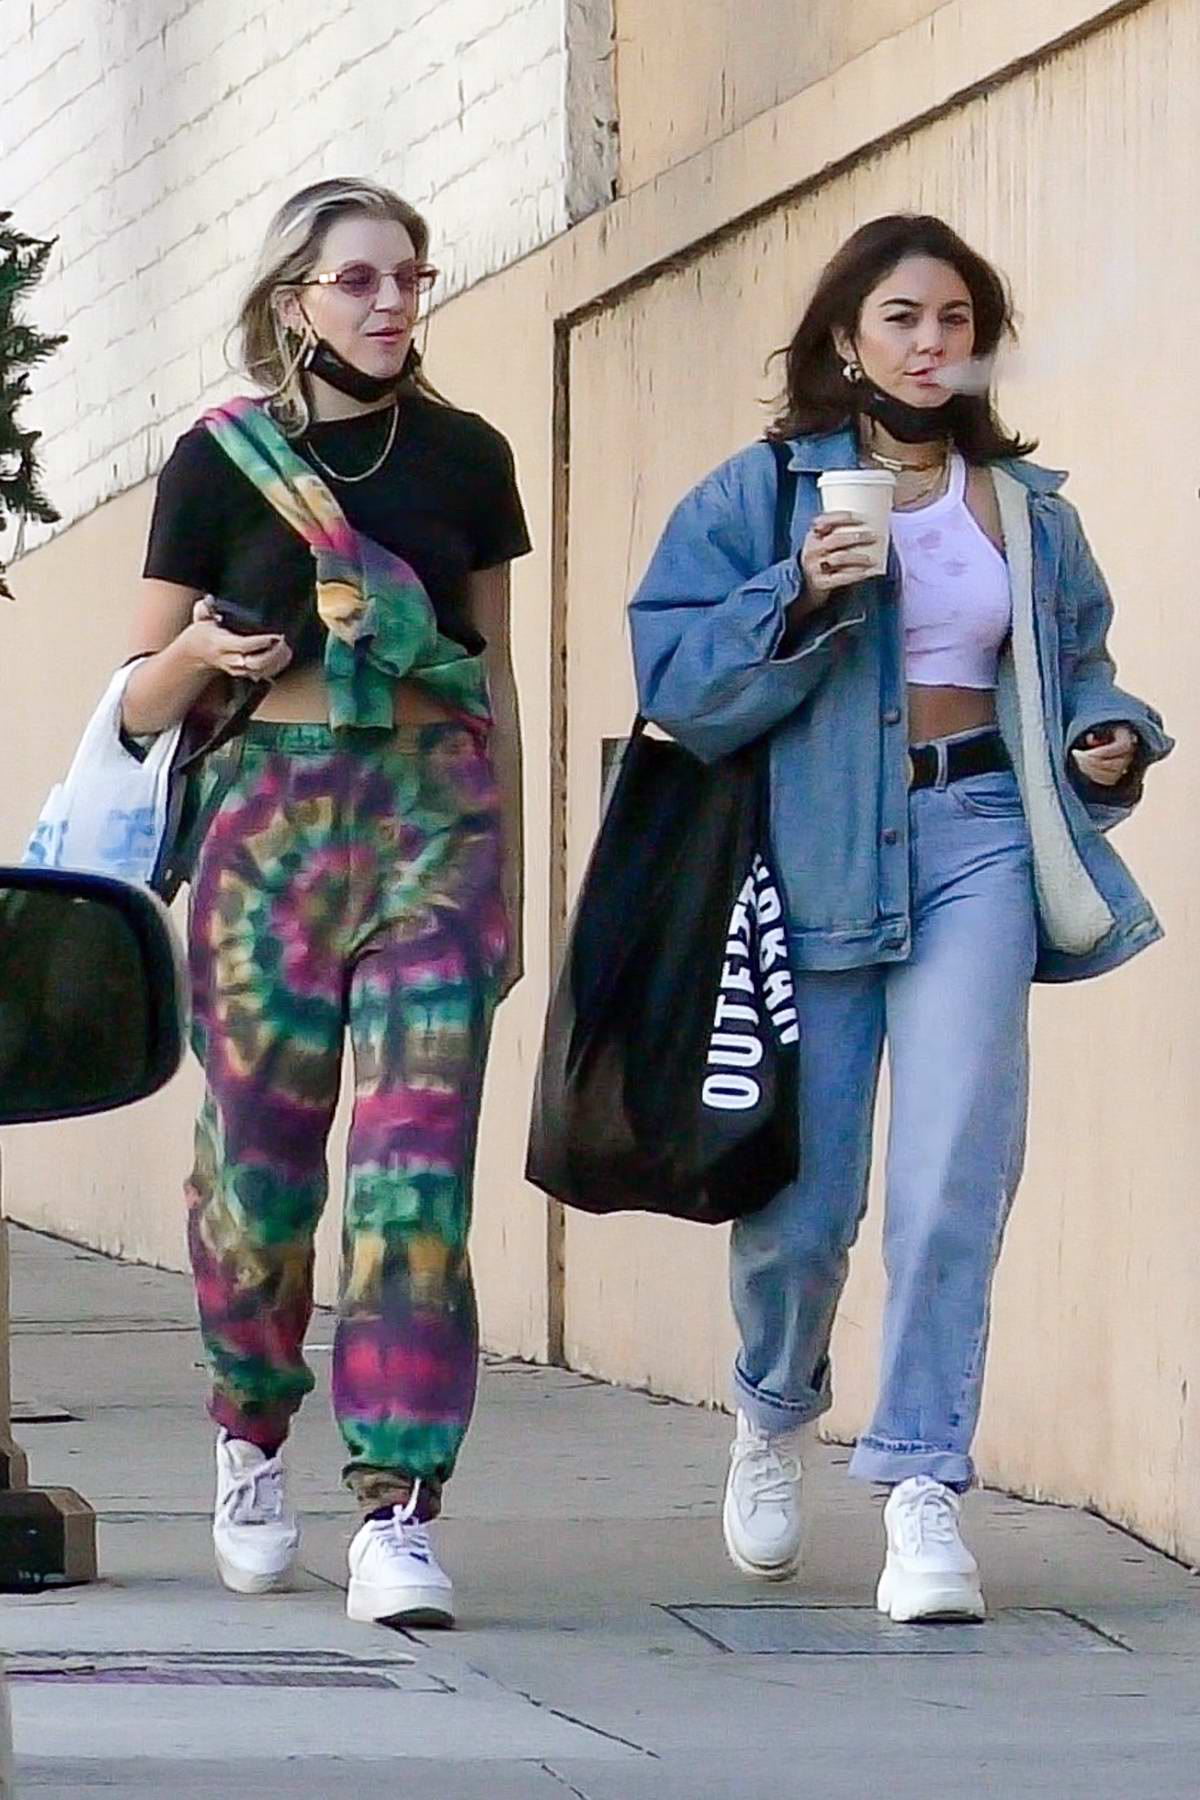 Vanessa Hudgens steps out in double denim during a shopping trip with BFF GG Magree in Burbank, California